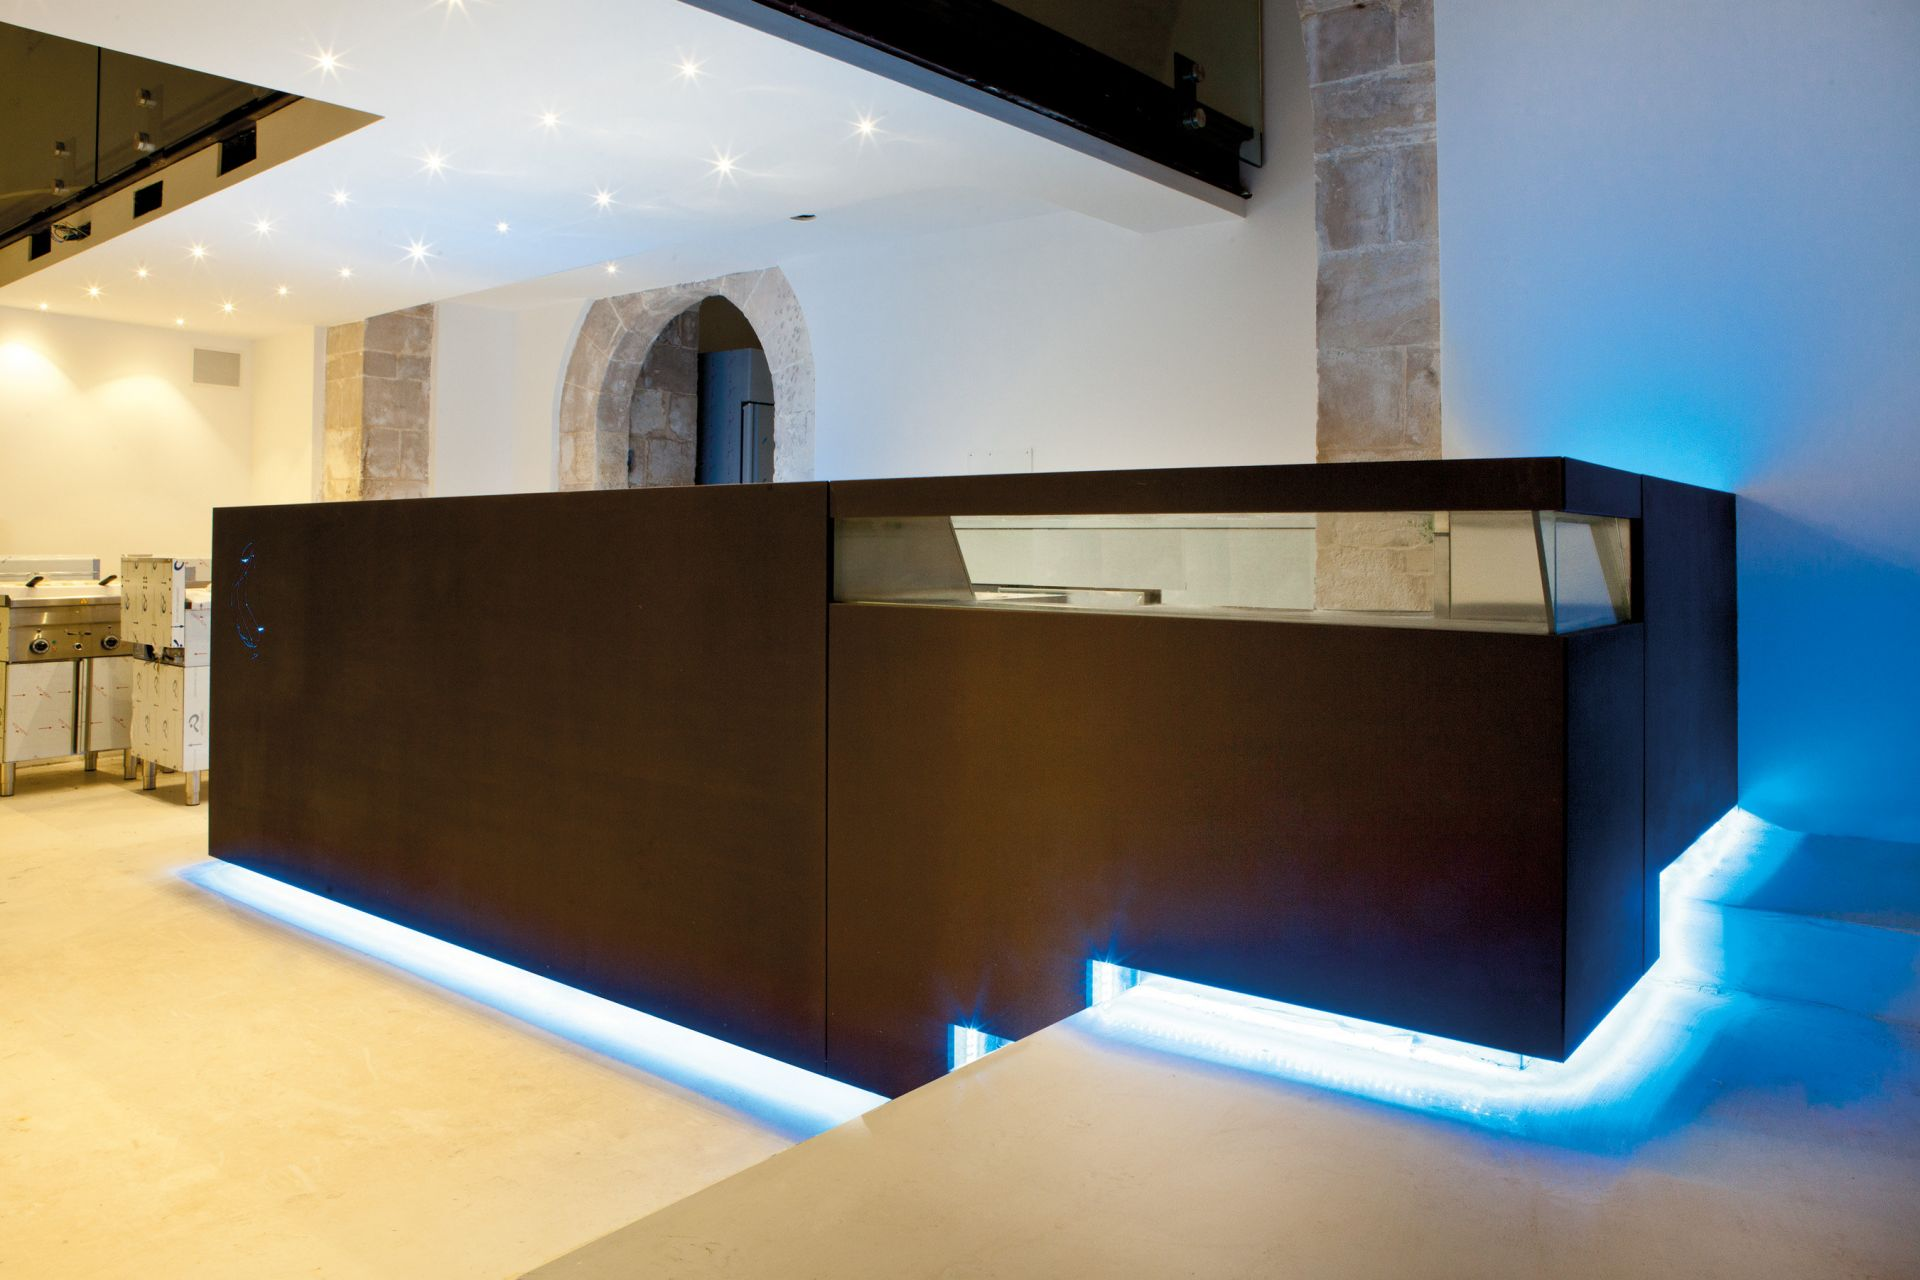 Bancone bar e pareti rivestiti in lamiere di acciao cort ten con led ...